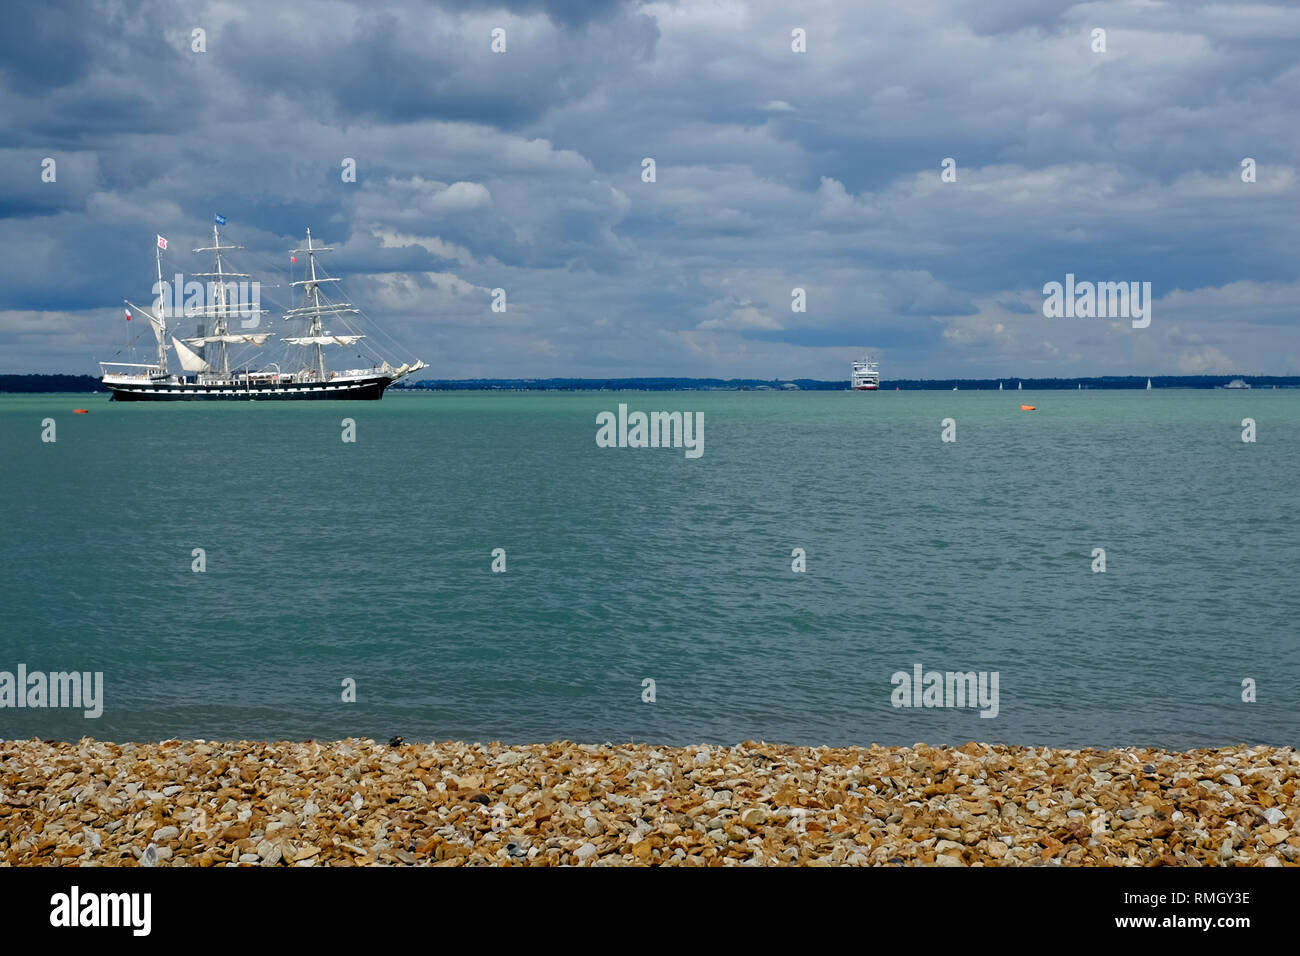 Sail Training Ship, Nelson, The Solent, Cowes, isle of Wight, England, UK, - Stock Image